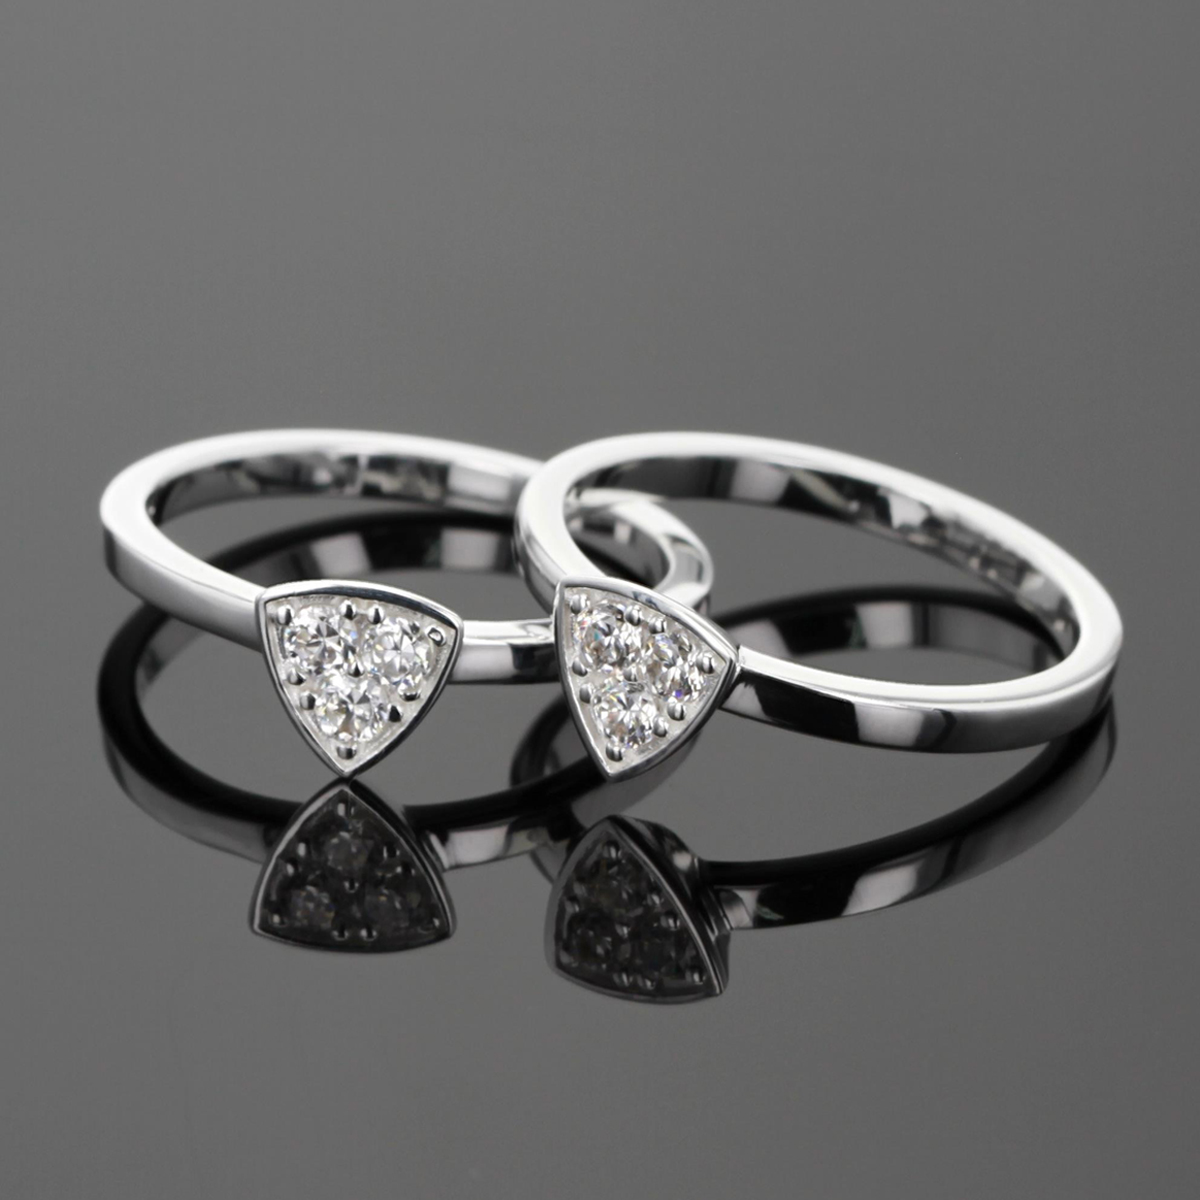 Silver and Zirconia jewellery